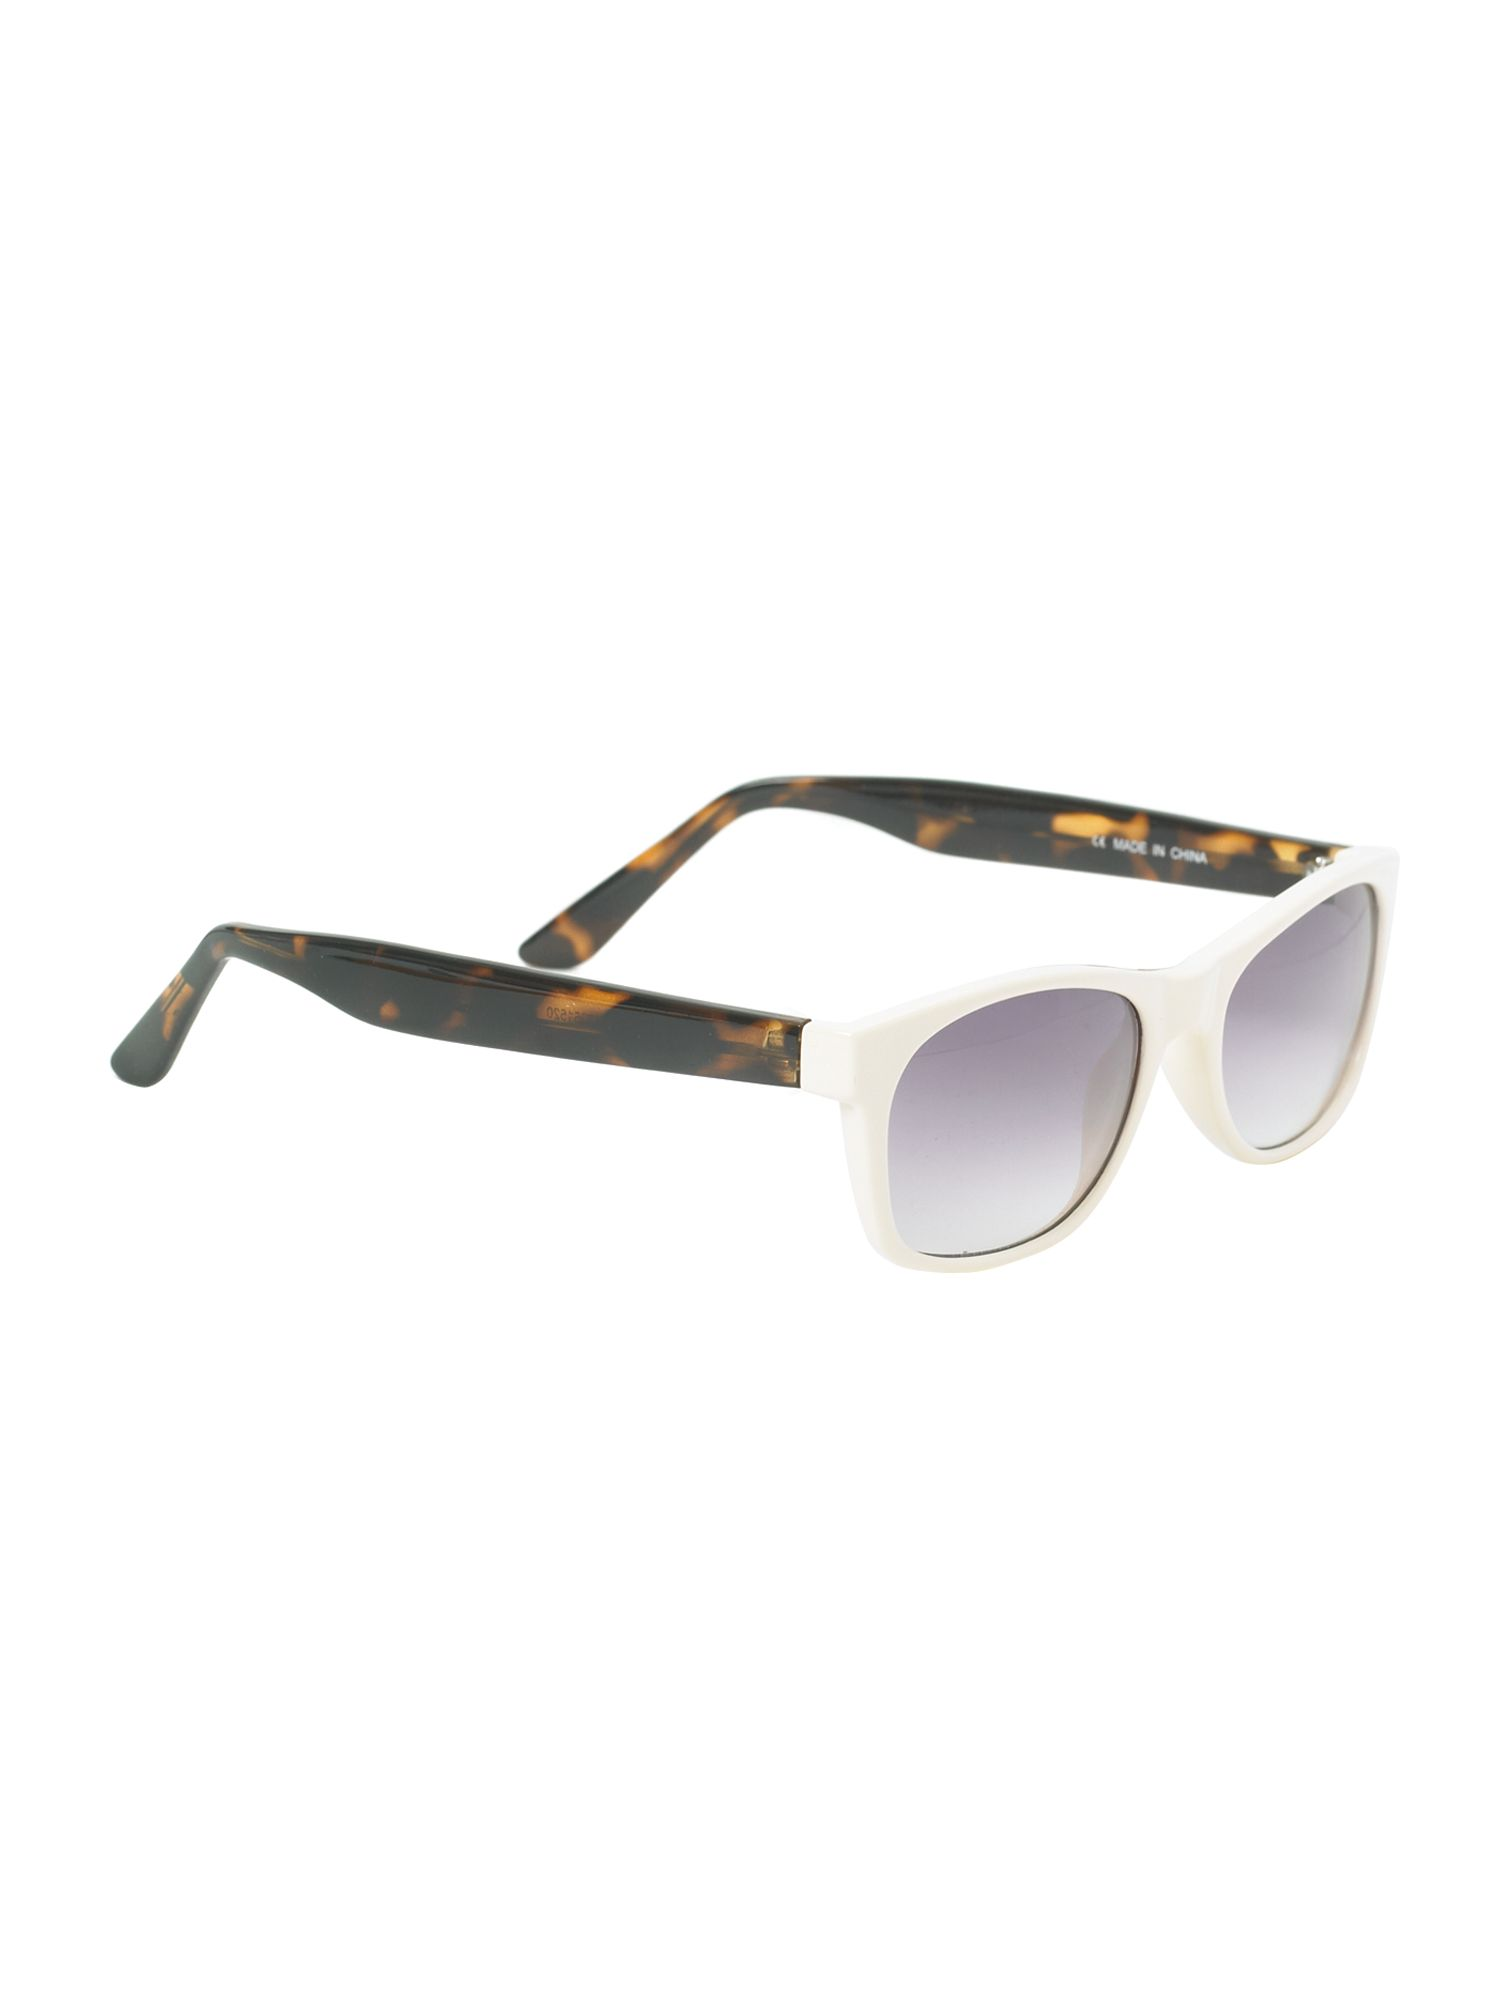 Cream wayferer sunglasses